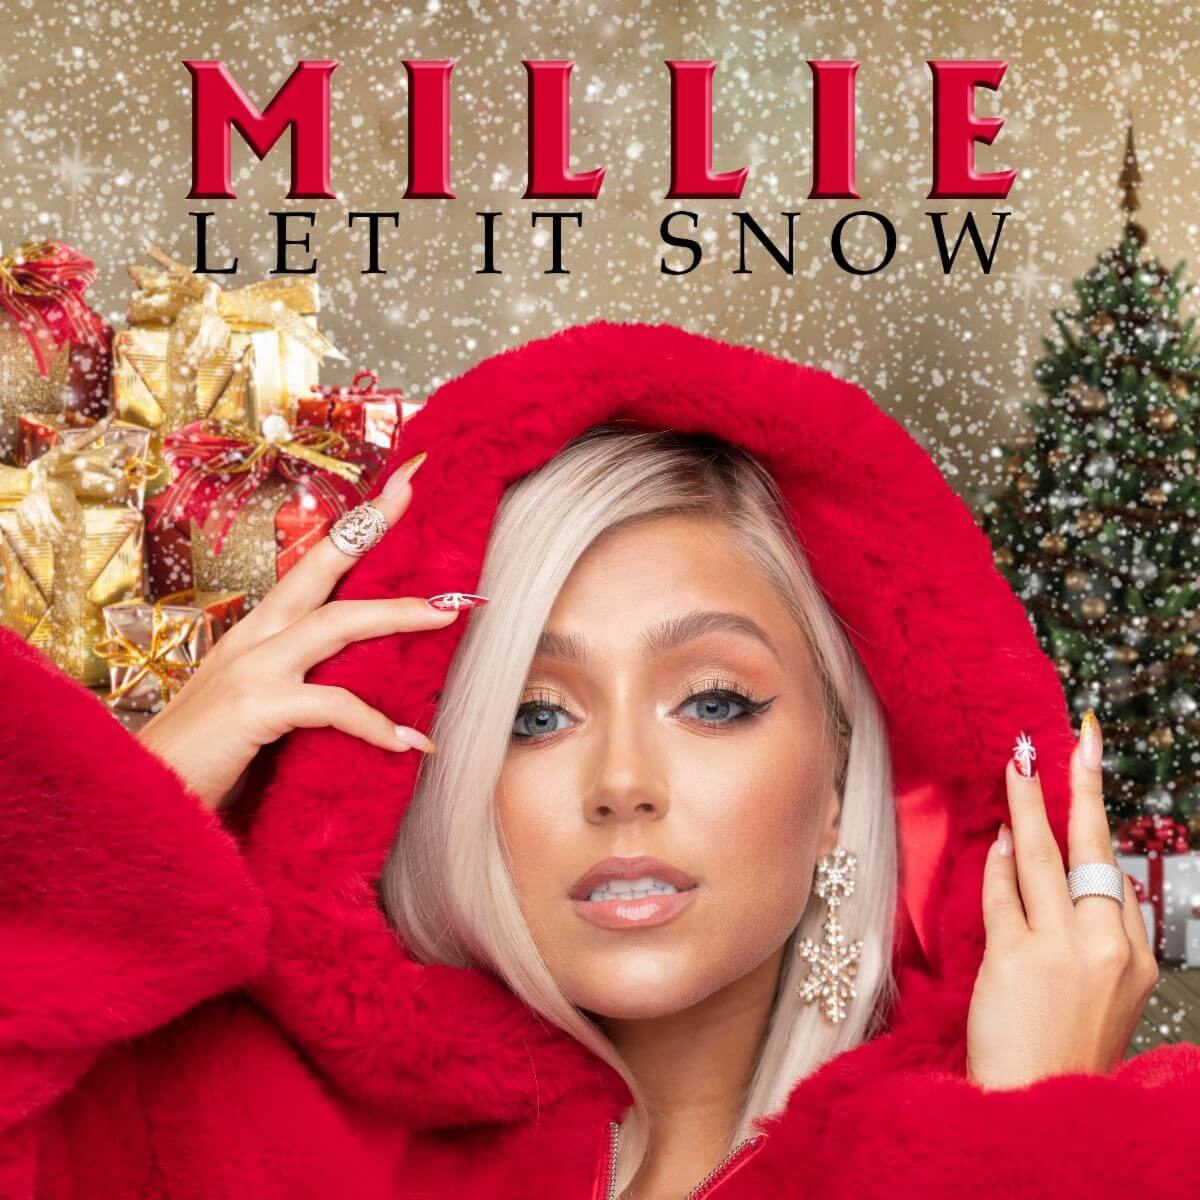 Let Is Snow Cover Art